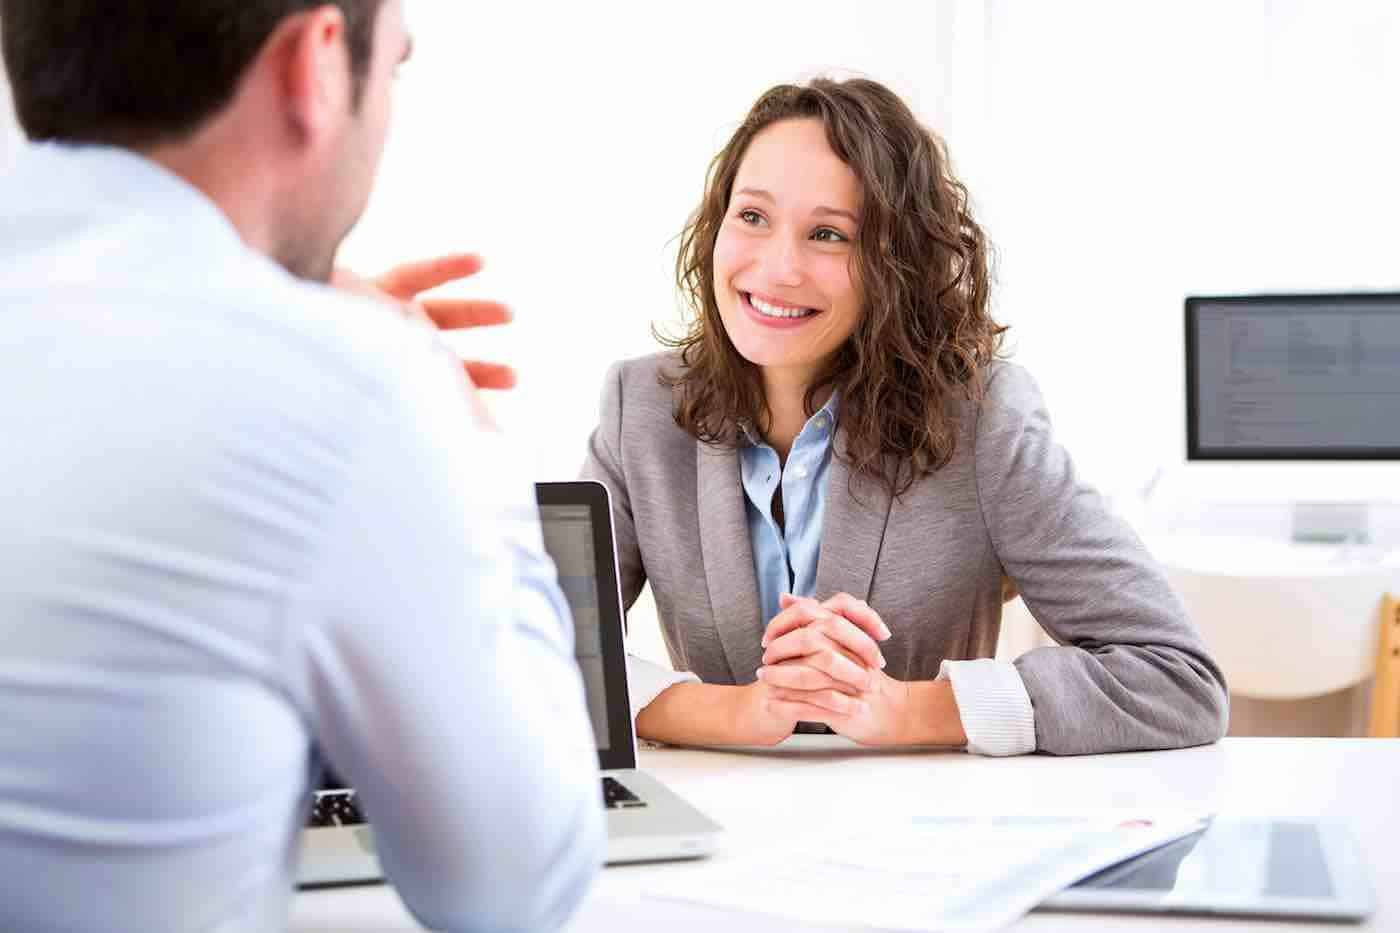 How to write a killer resume employment boost land more interviews ...